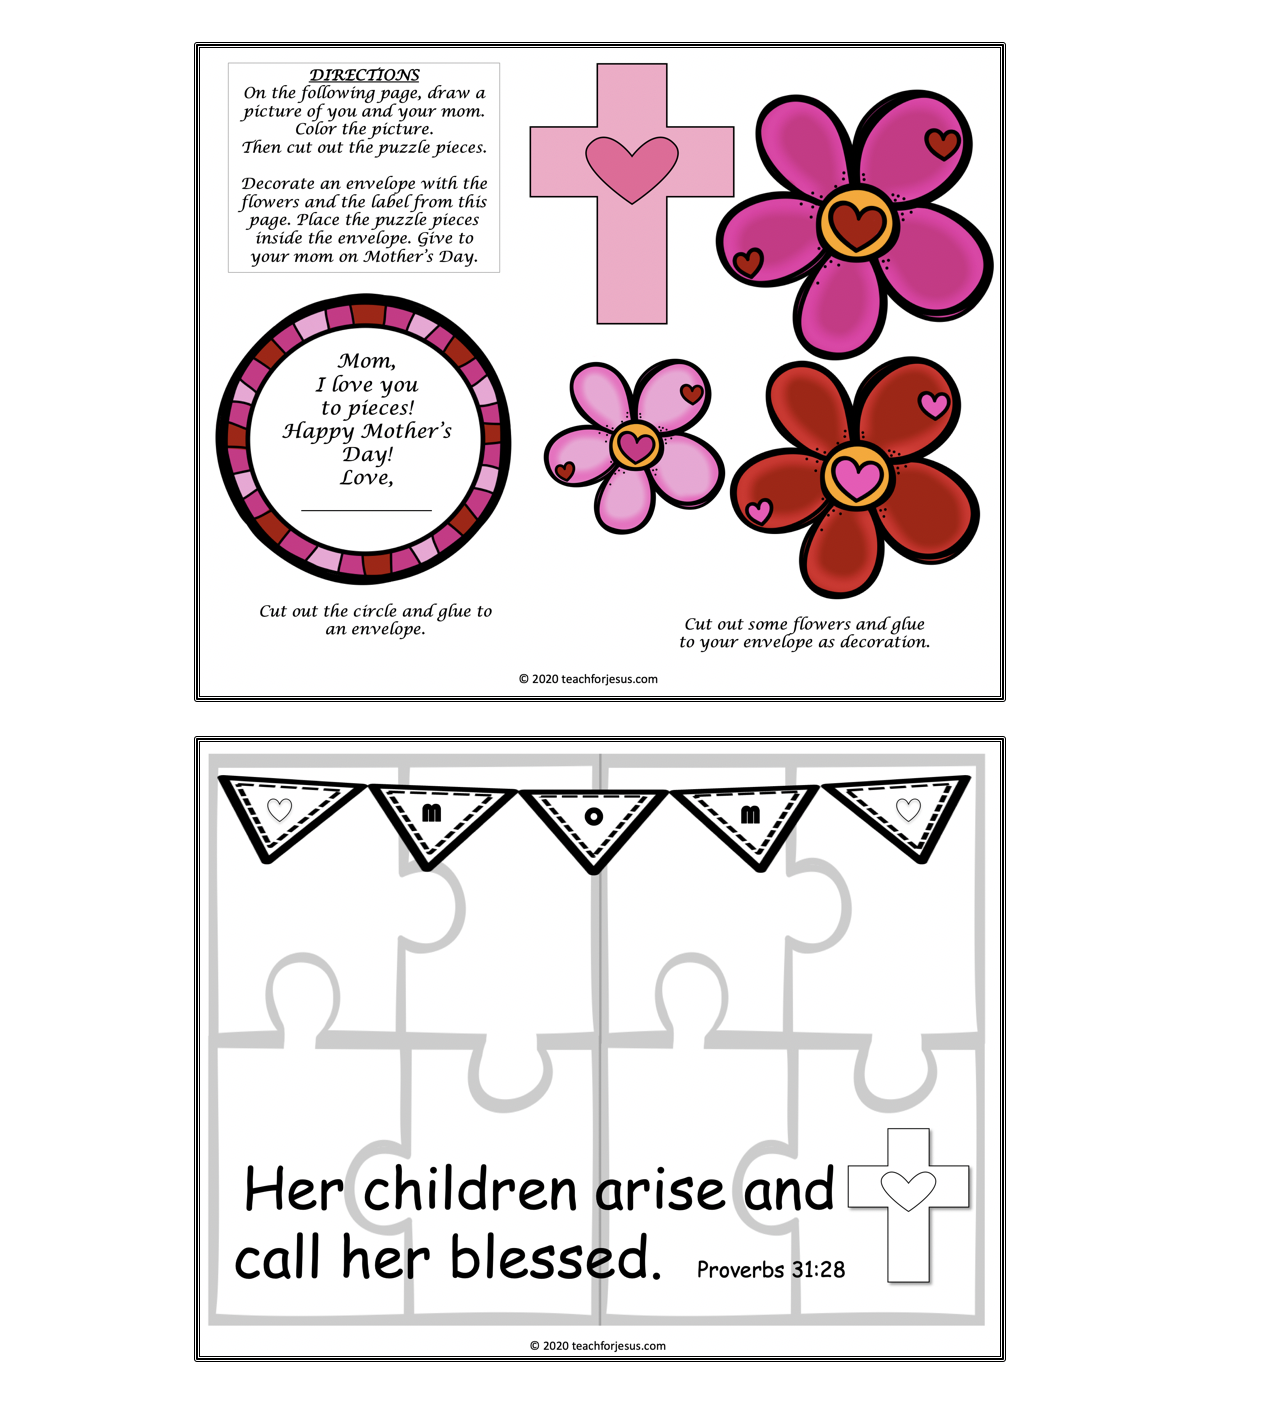 mothers-day-card-pin2.png